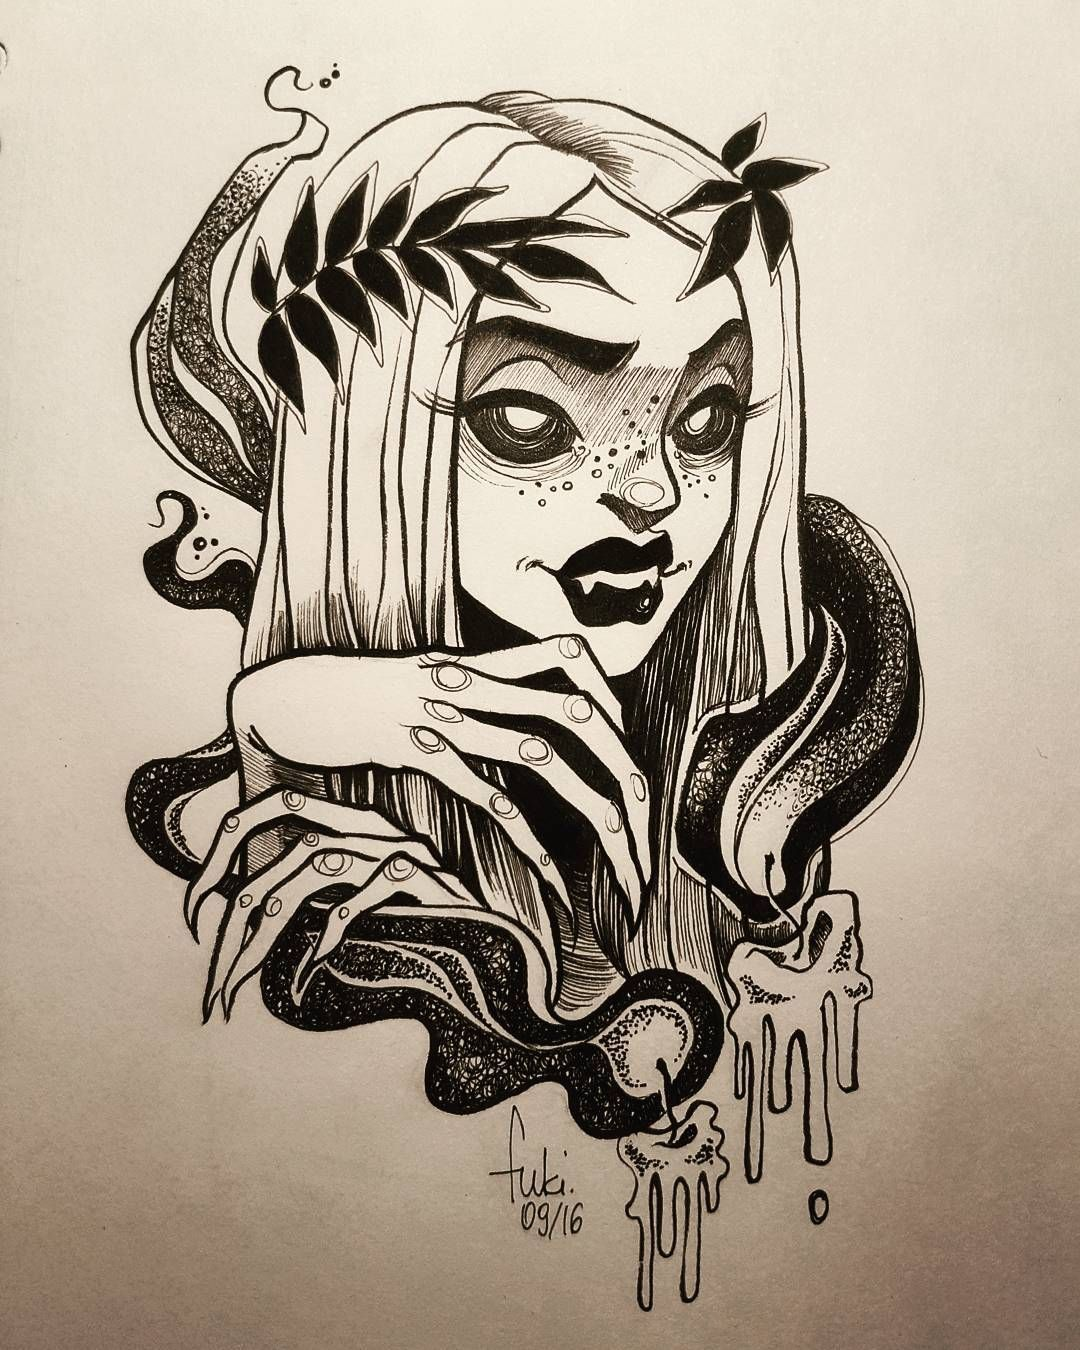 Tattoo uploaded by Xavier | Flash by Lou DC. #LouDC #girly ...  |Cool Drawings Flash Girly